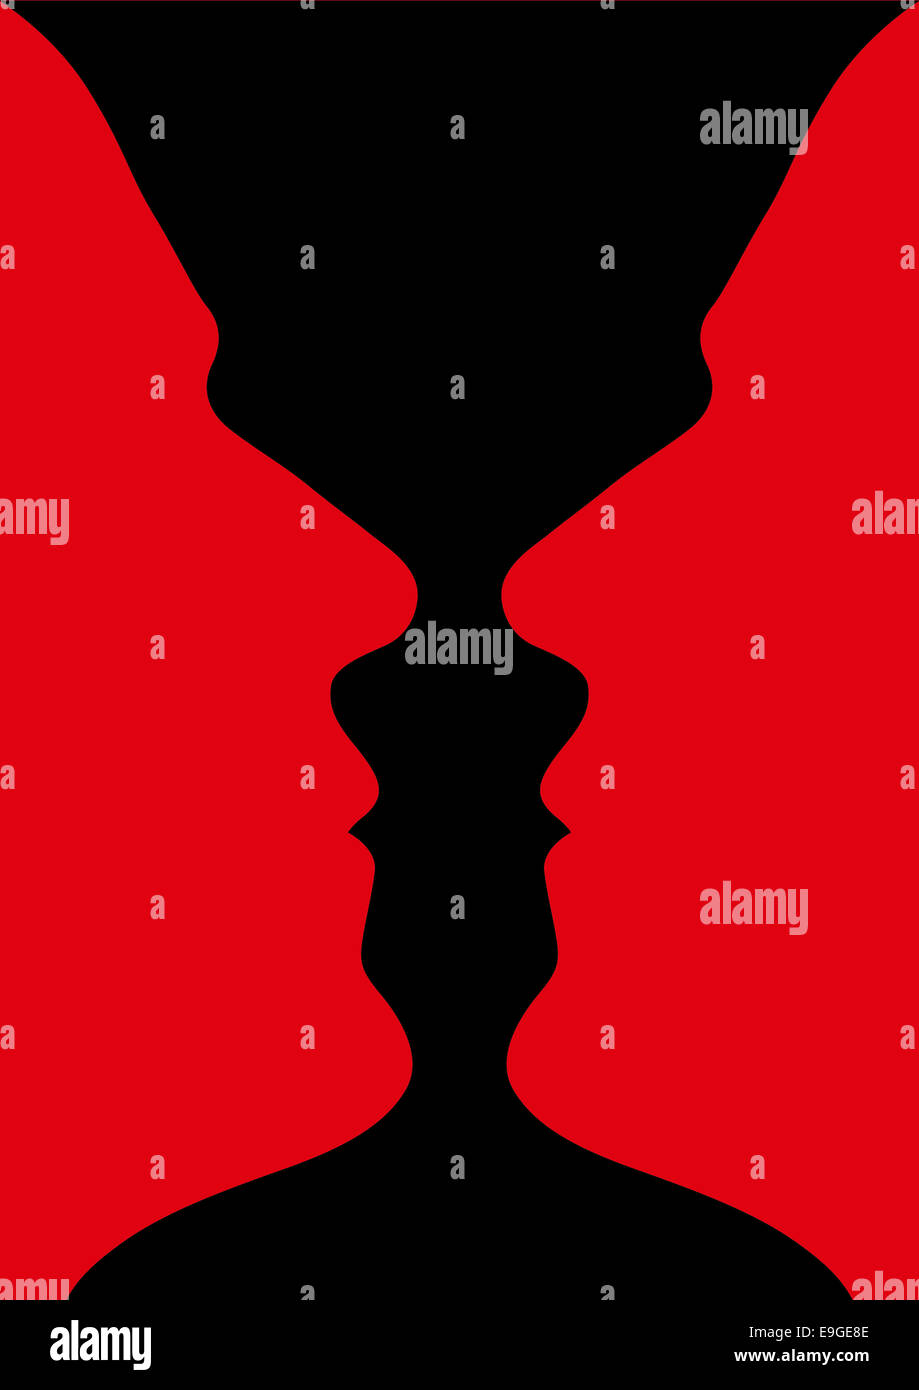 Optical illusion vase stock photos optical illusion vase stock optical illusion of a vase with red black background or two people facing each other reviewsmspy